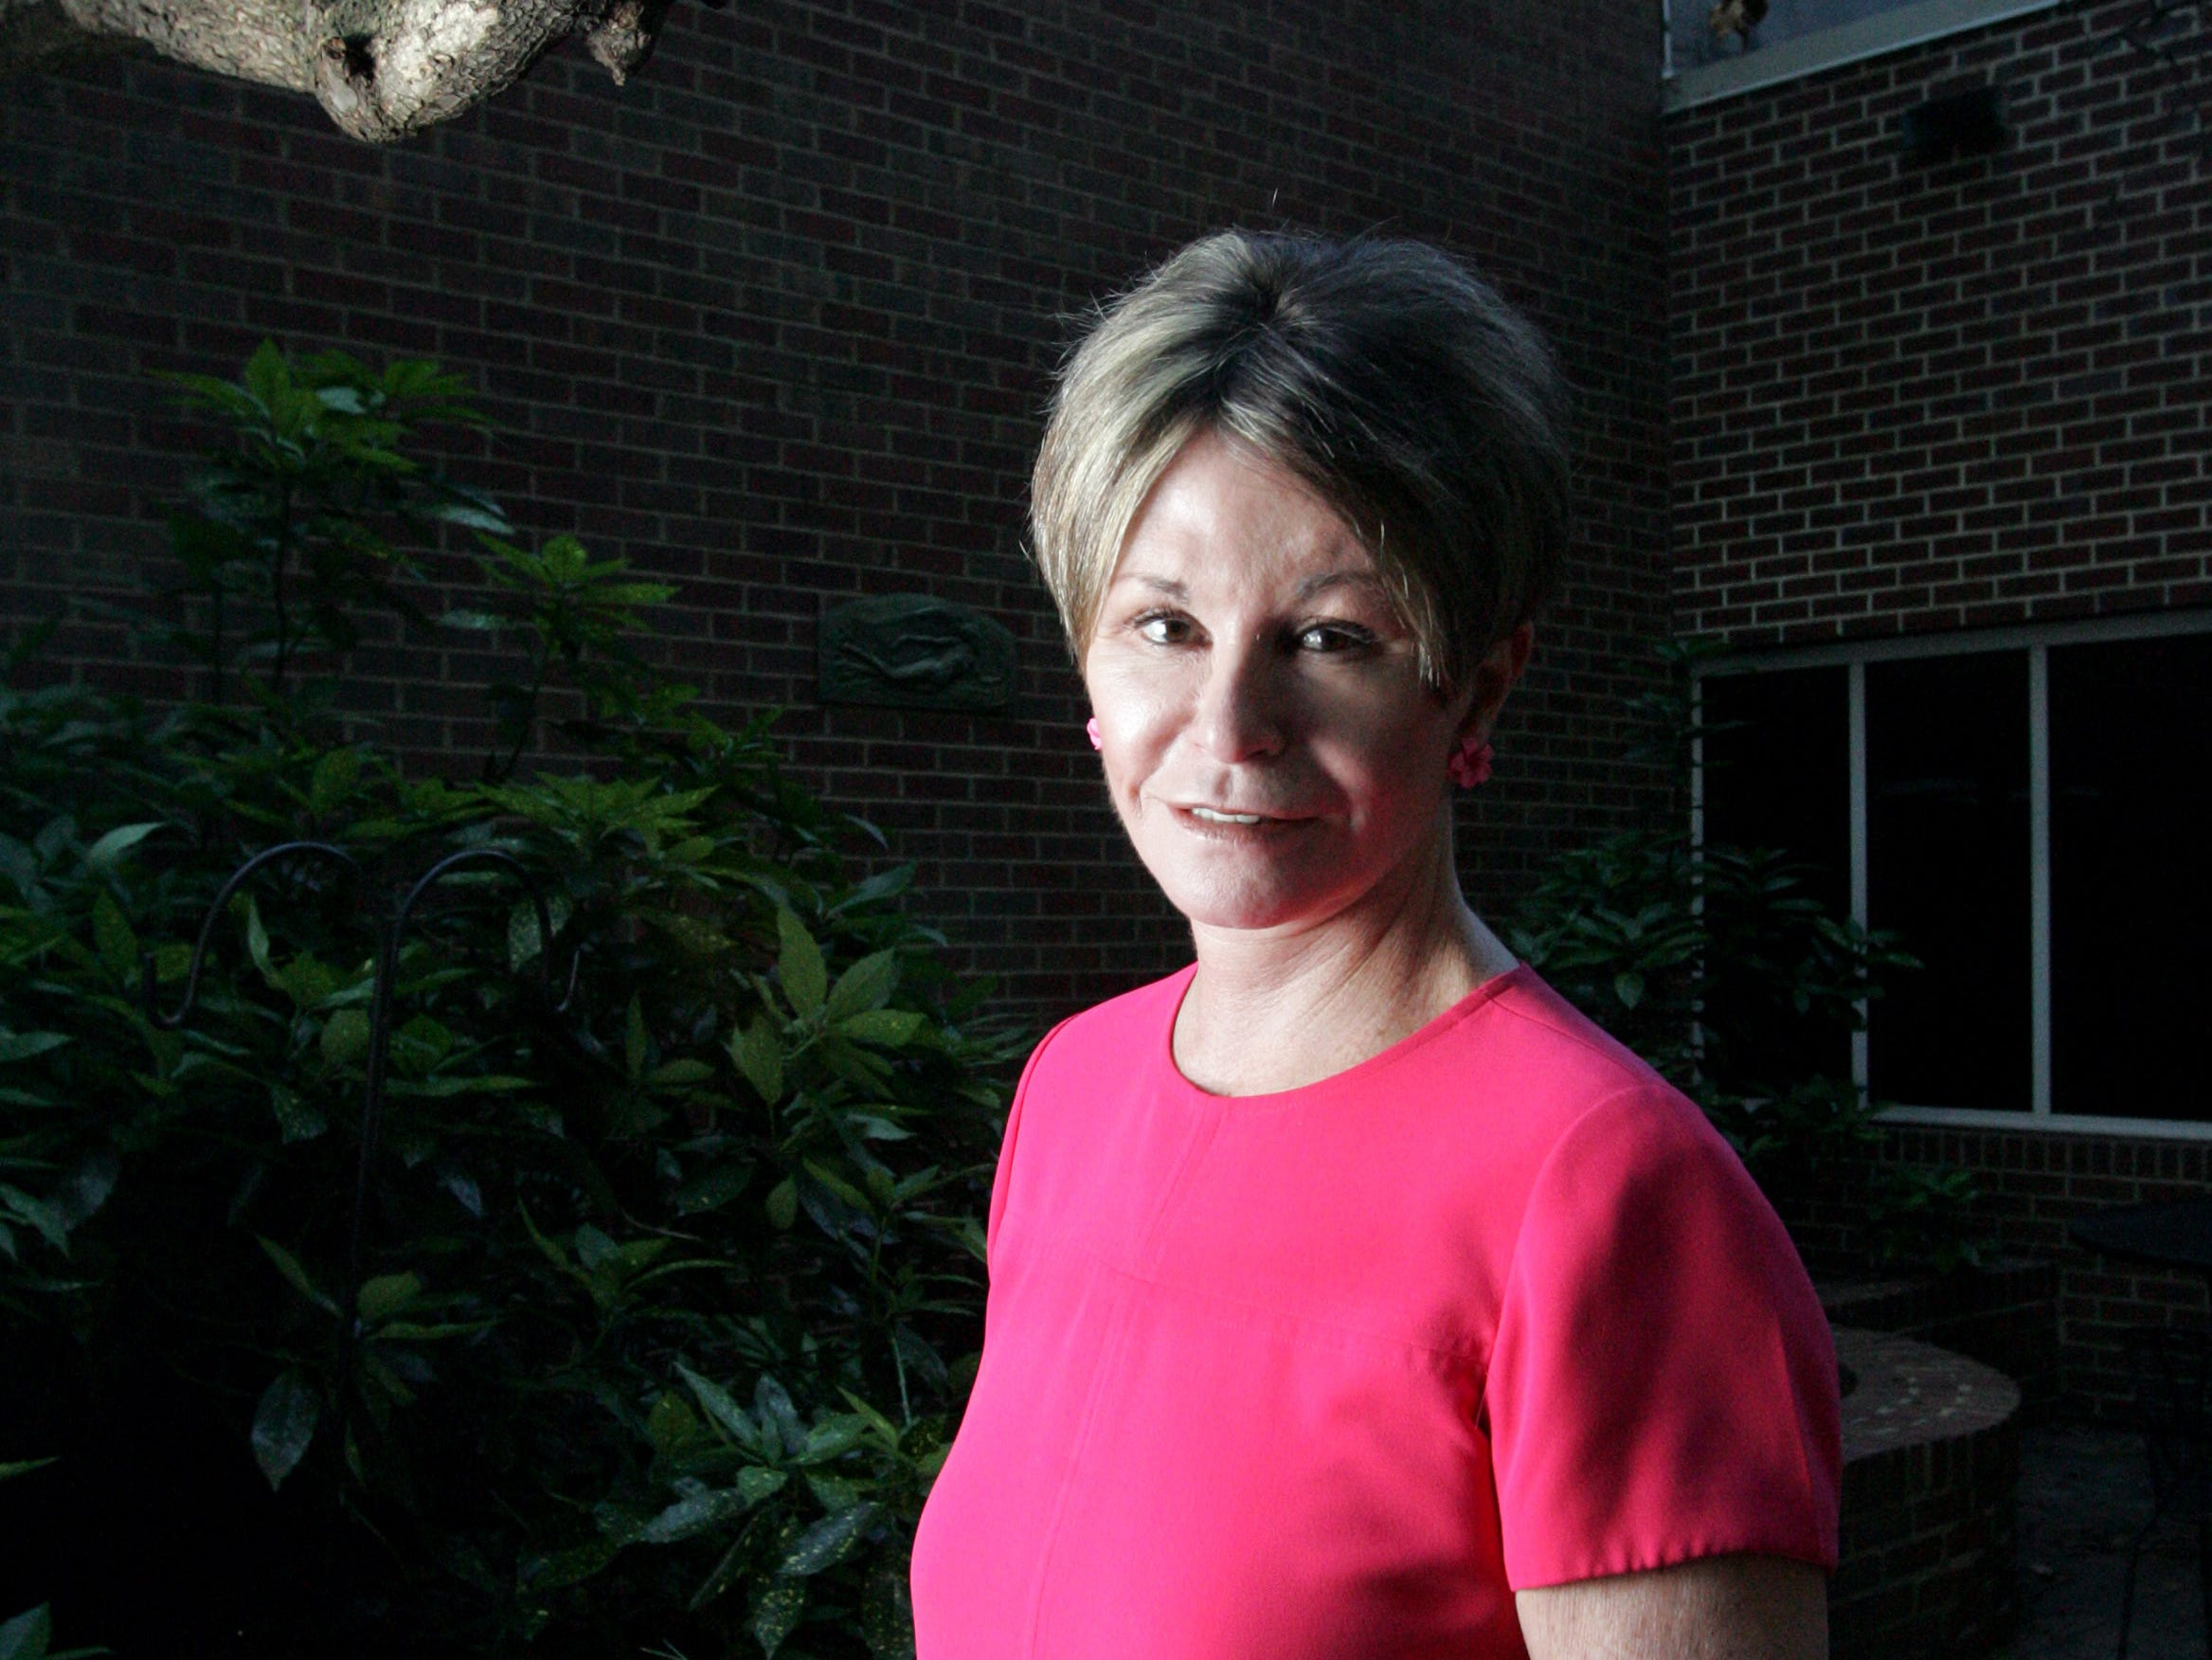 Colleen Conway-Welch Dean of Vanderbilt University School of Nursing has established the Internatinal Nursing Coalition for Mass Causalty Education to train nurses to help in disasters. Courtyard of the school Monday, June 4,  2007 in Nashville, Tenn.